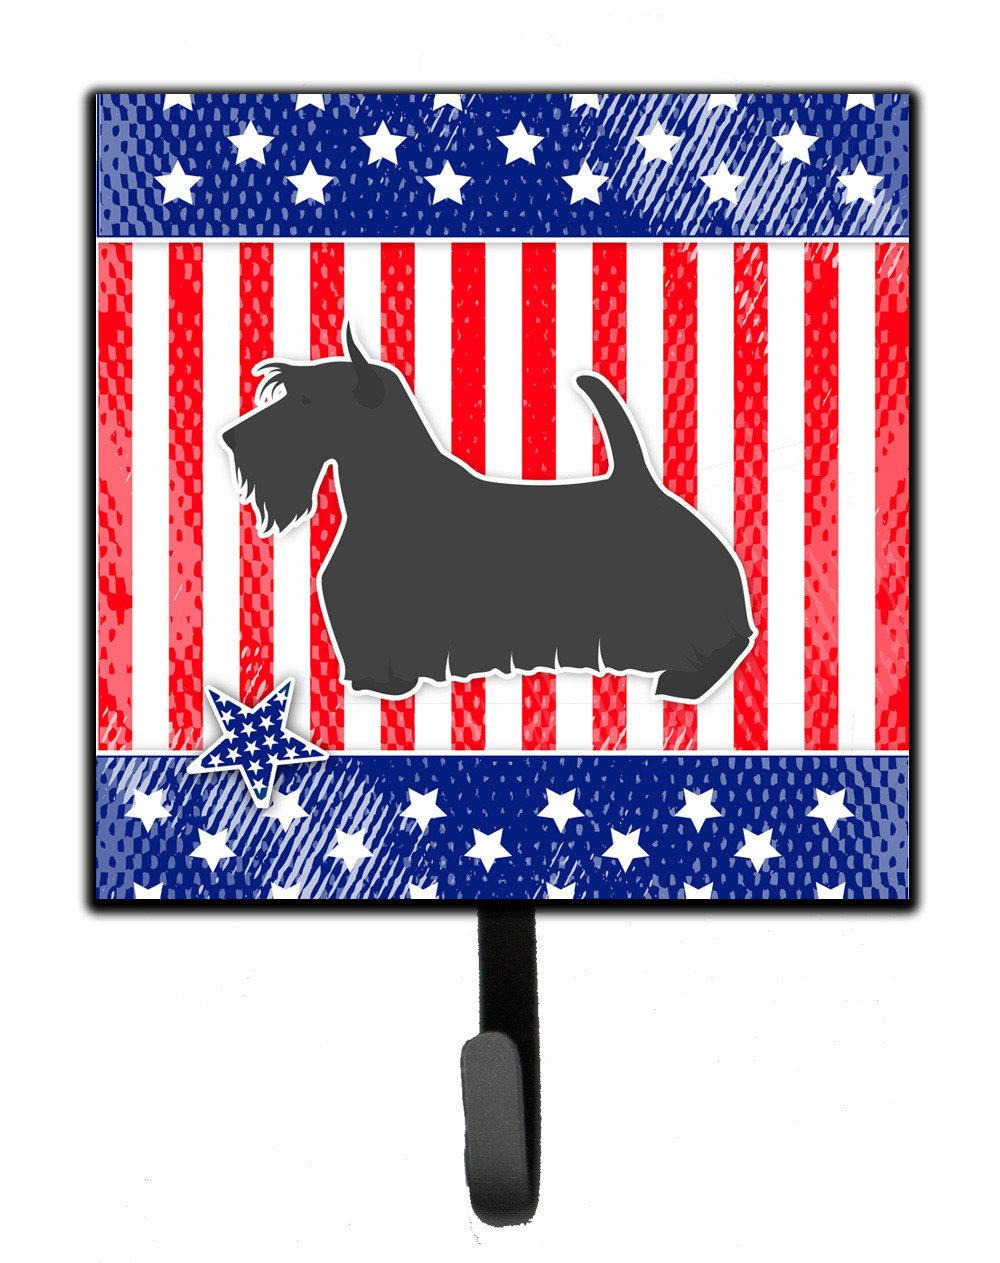 USA Patriotic Scottish Terrier Leash or Key Holder BB3369SH4 by Caroline's Treasures